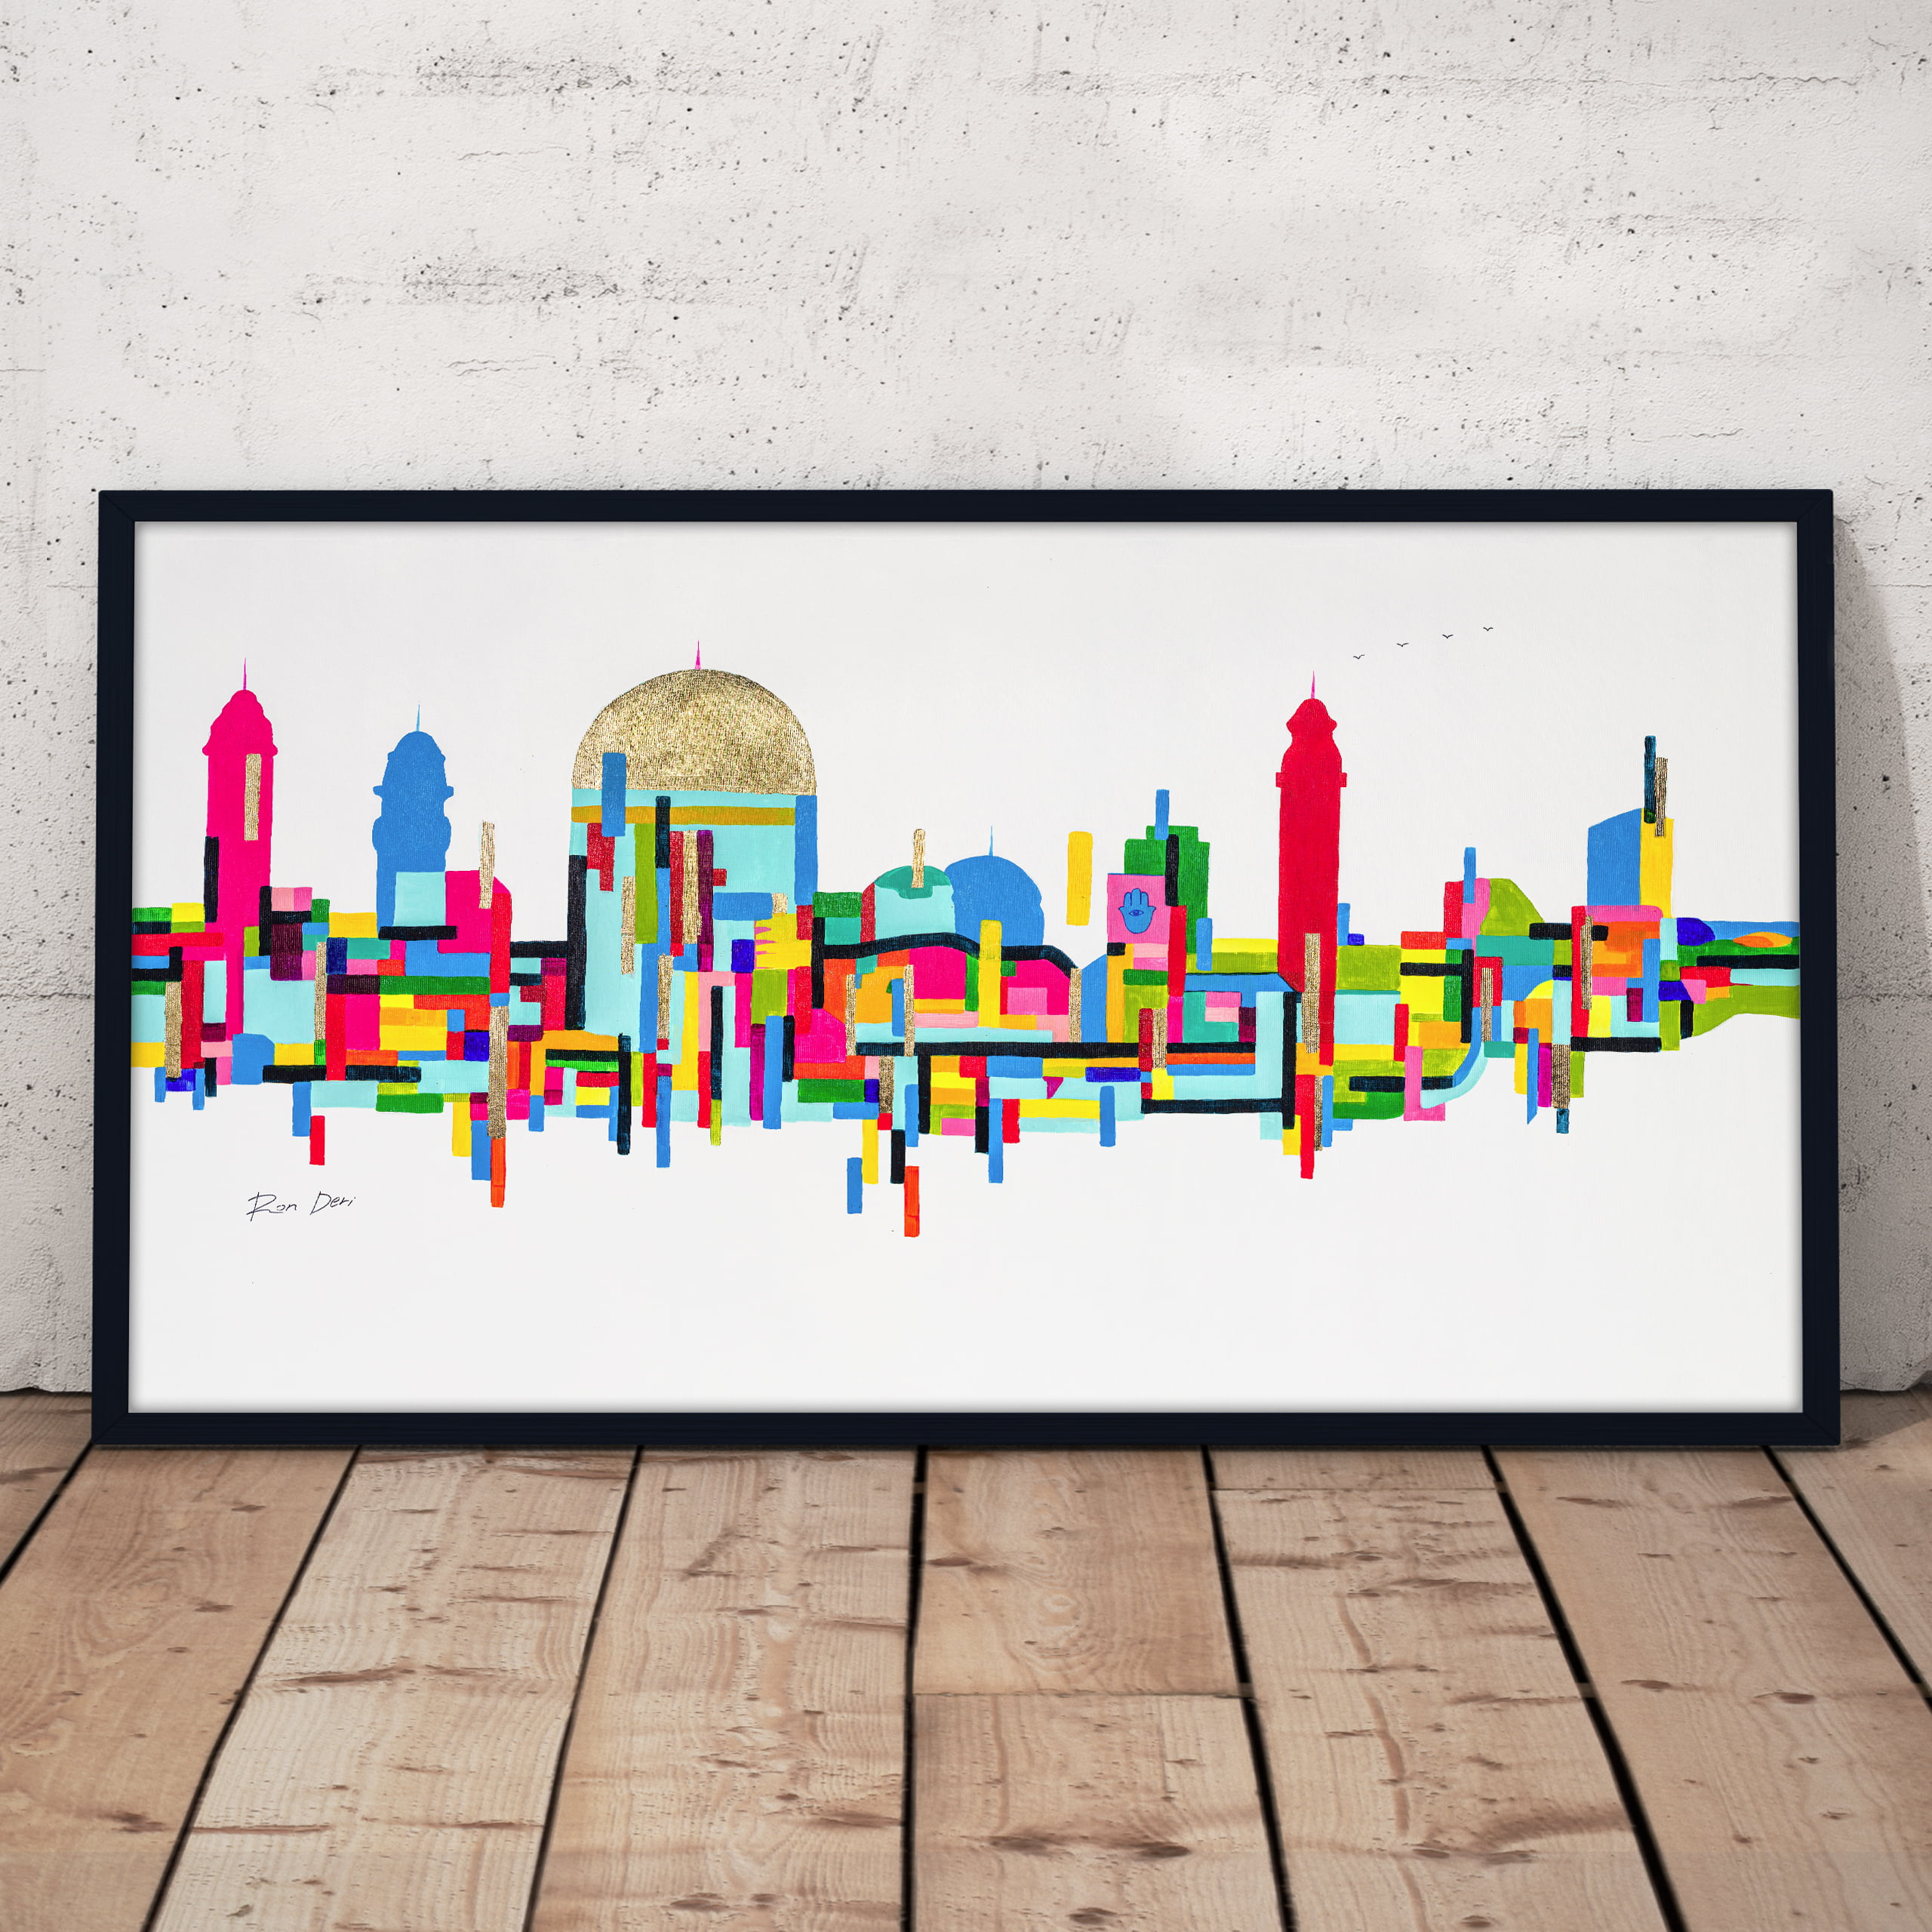 jerusalem-city-of-gold-god-abstract-skyline-ron-deri-1